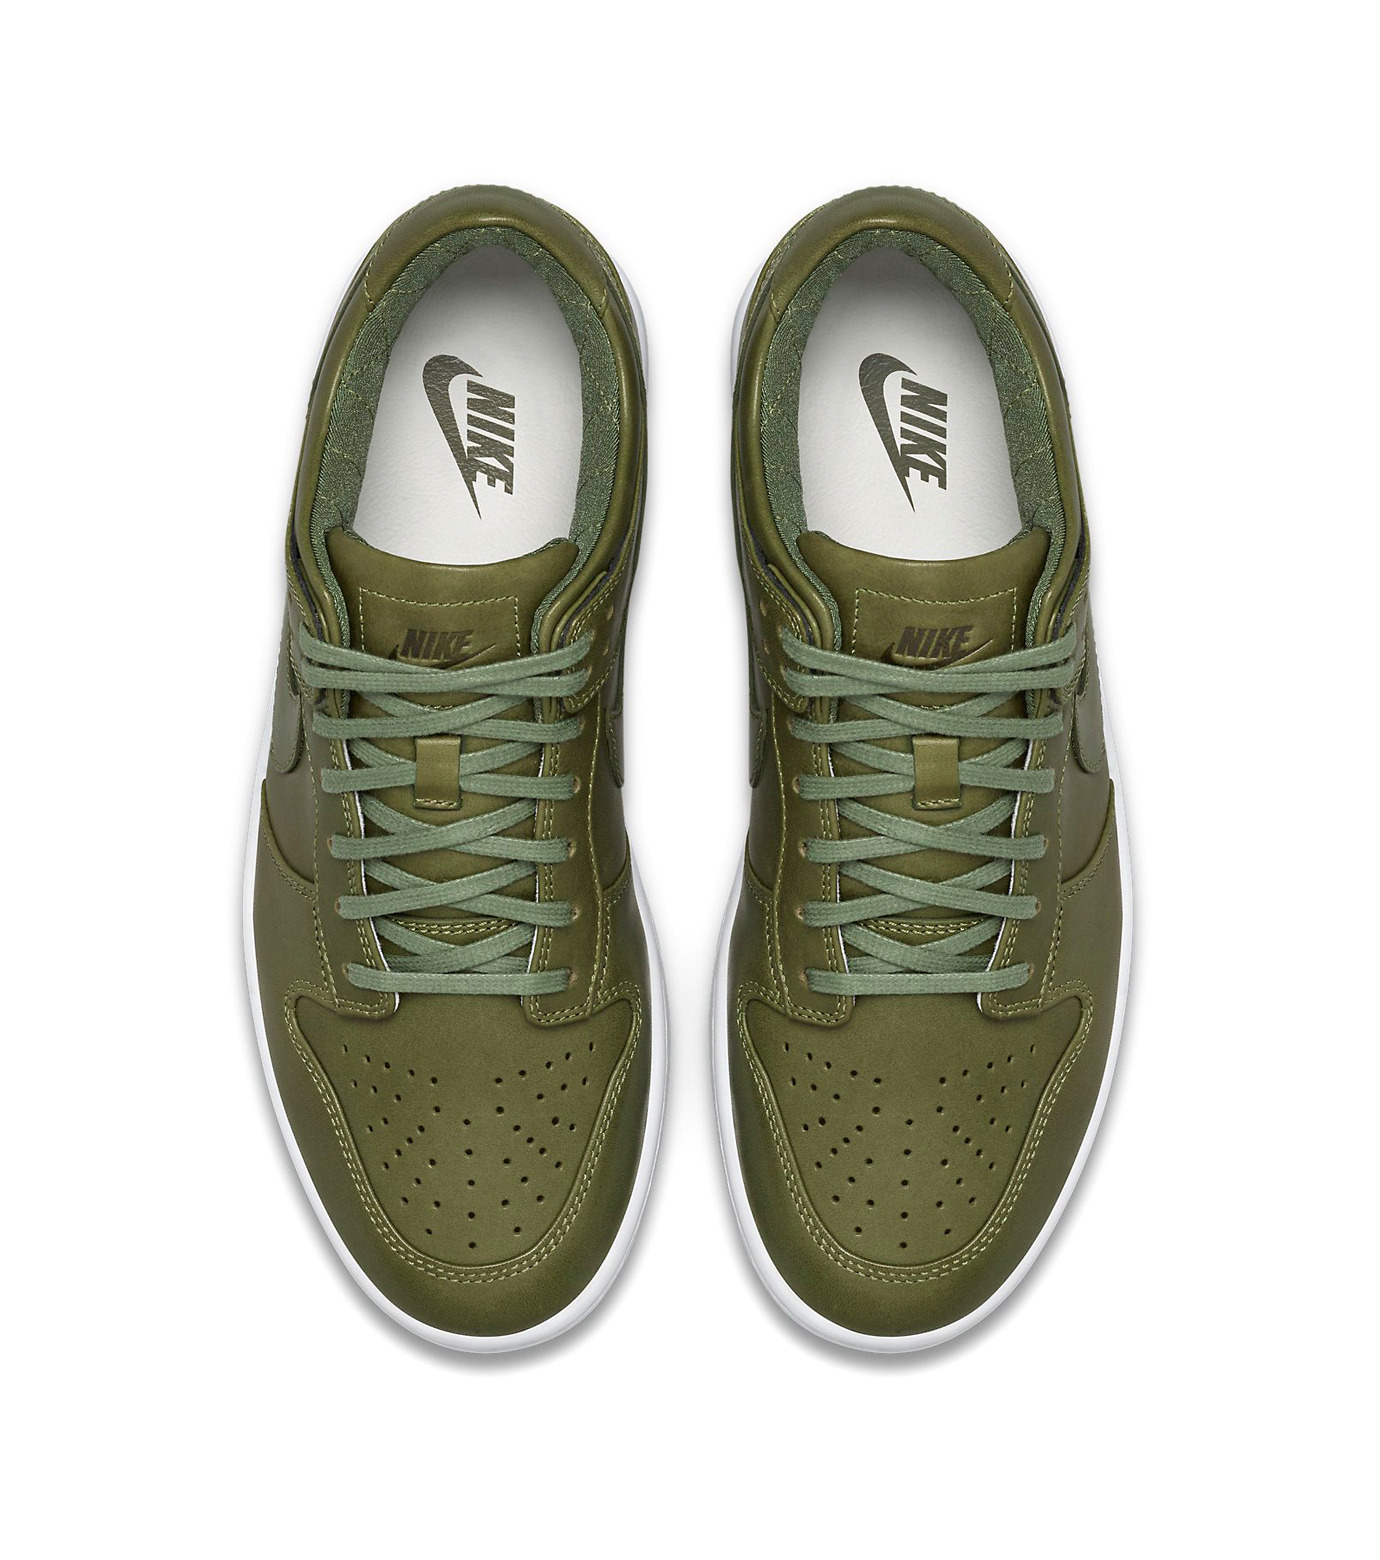 NIKE(ナイキ)のLAB DUNK LUX LOW-GRAY(シューズ/shoes)-857587-300-11 拡大詳細画像4